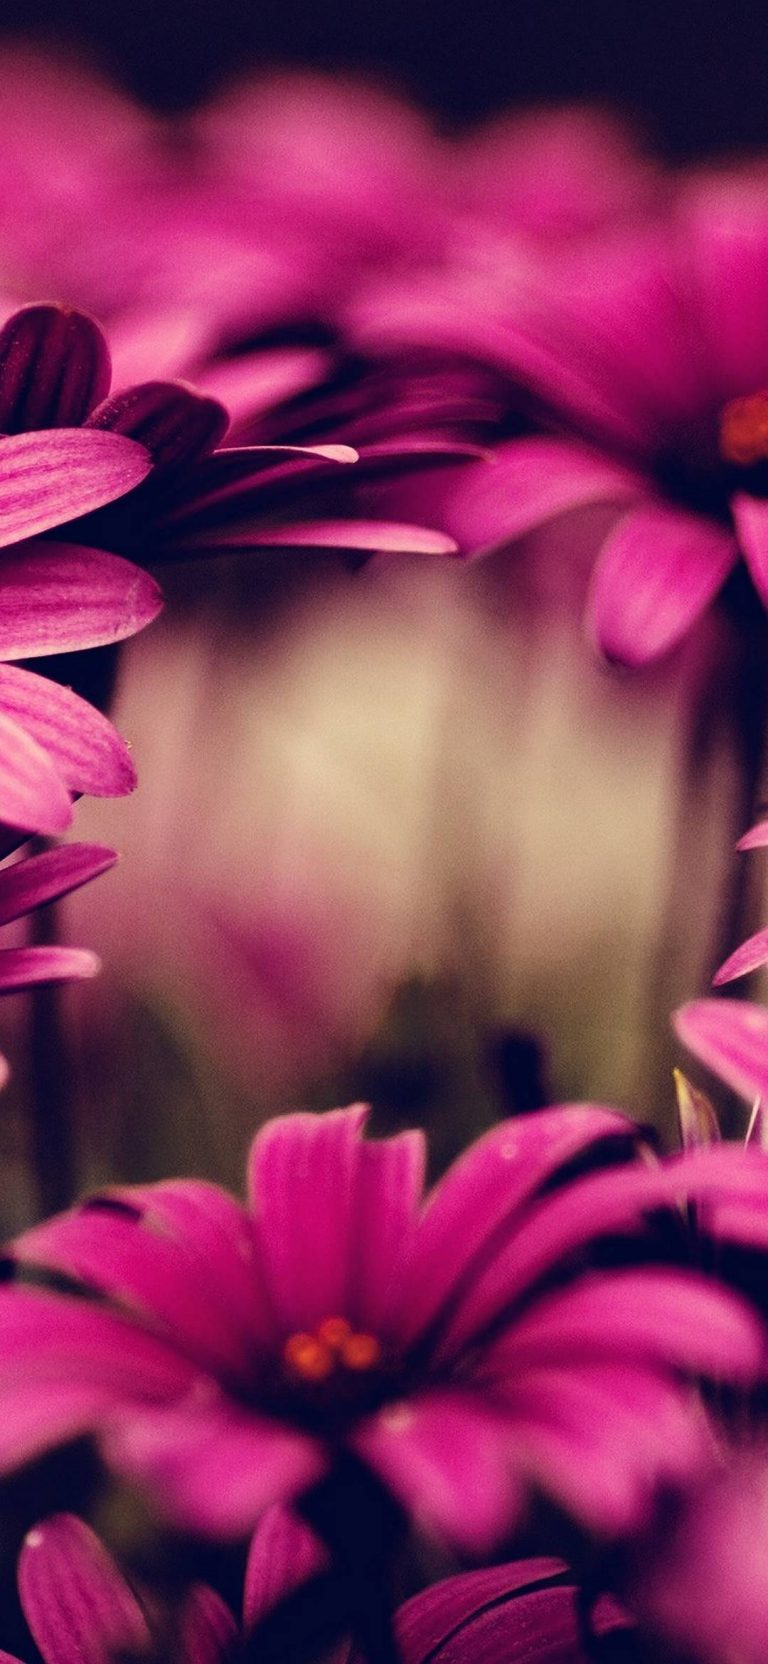 Nature Flowers Pink 1080x2340 768x1664